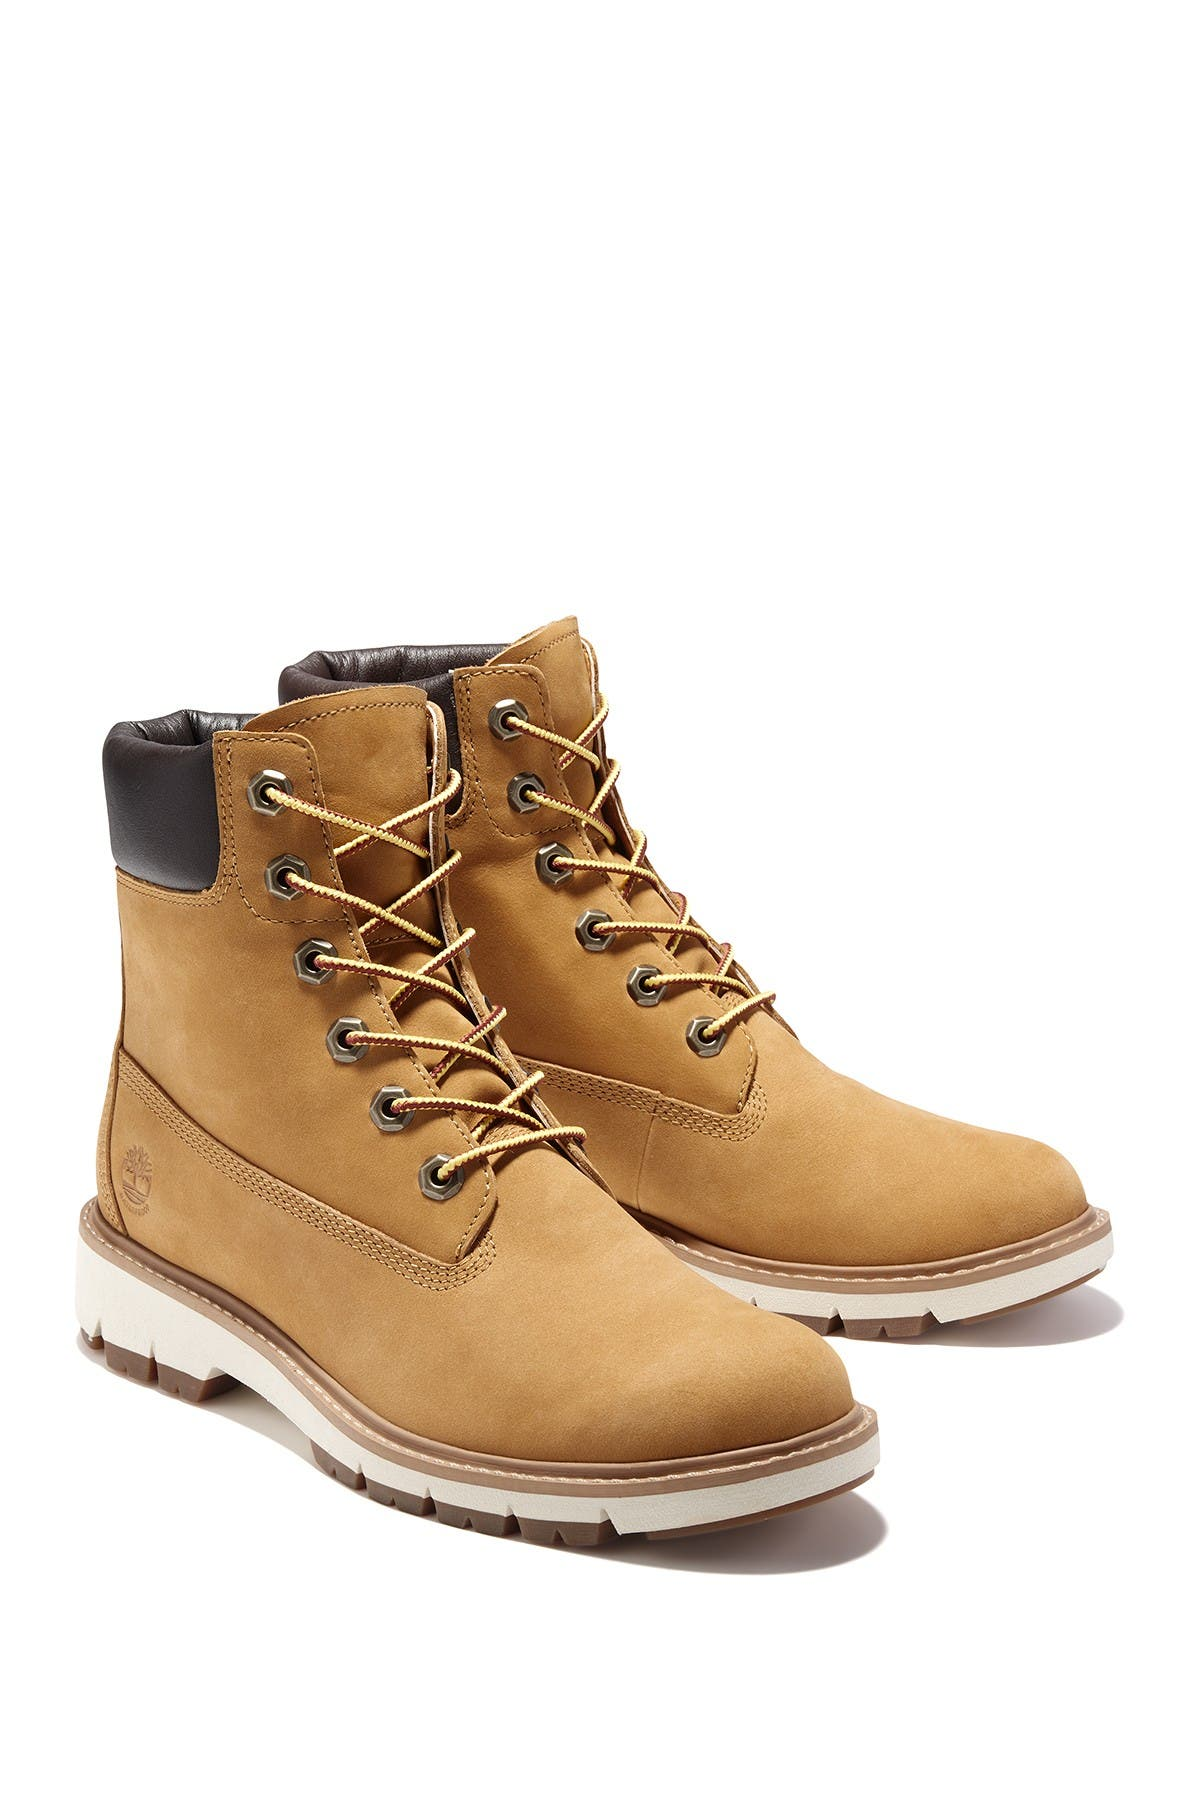 "Image of Timberland Lucia Way 6"" Waterproof Boot"